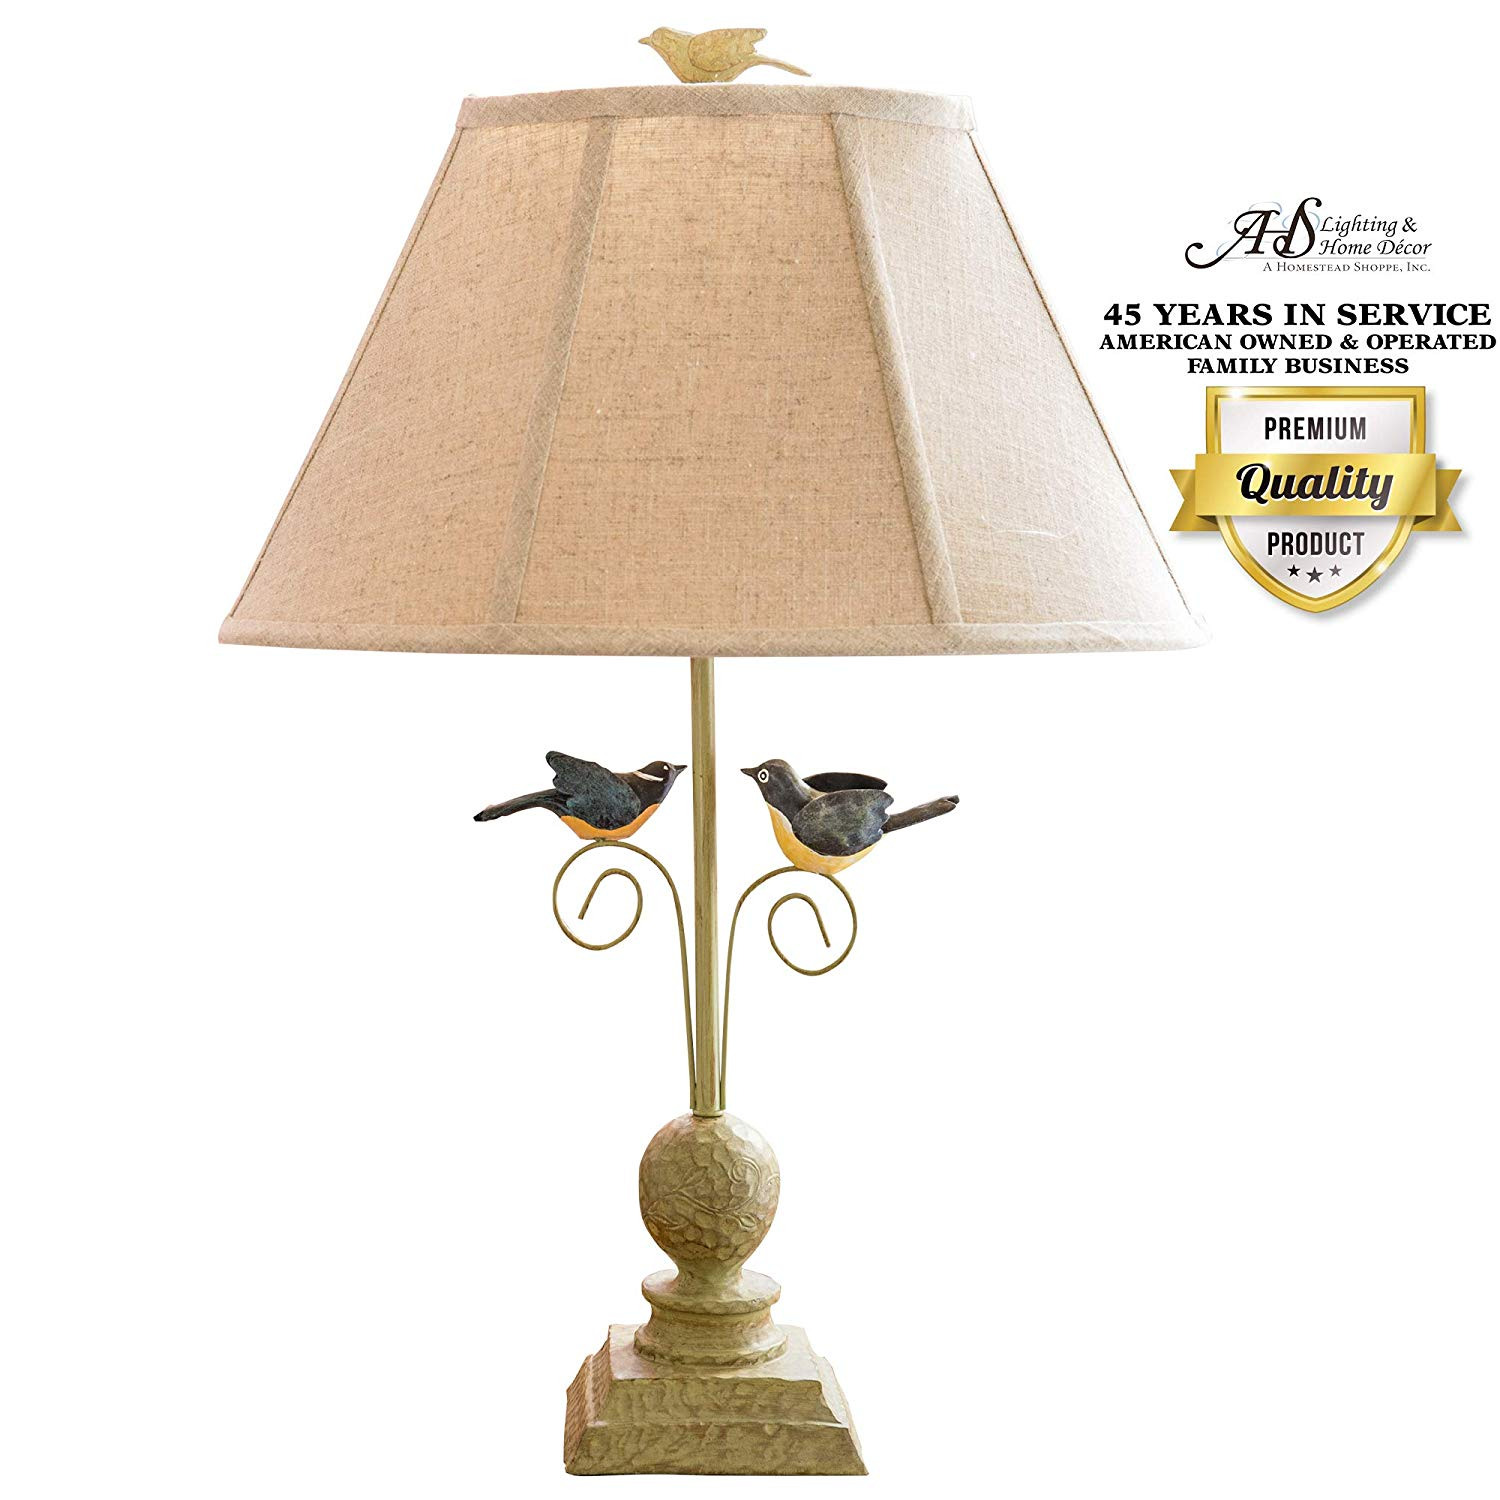 ahs lighting fly away together decorative accent lamp beige table shade green polyresin for end side tables shelves living room lamps wooden storage crates ikea glass linen